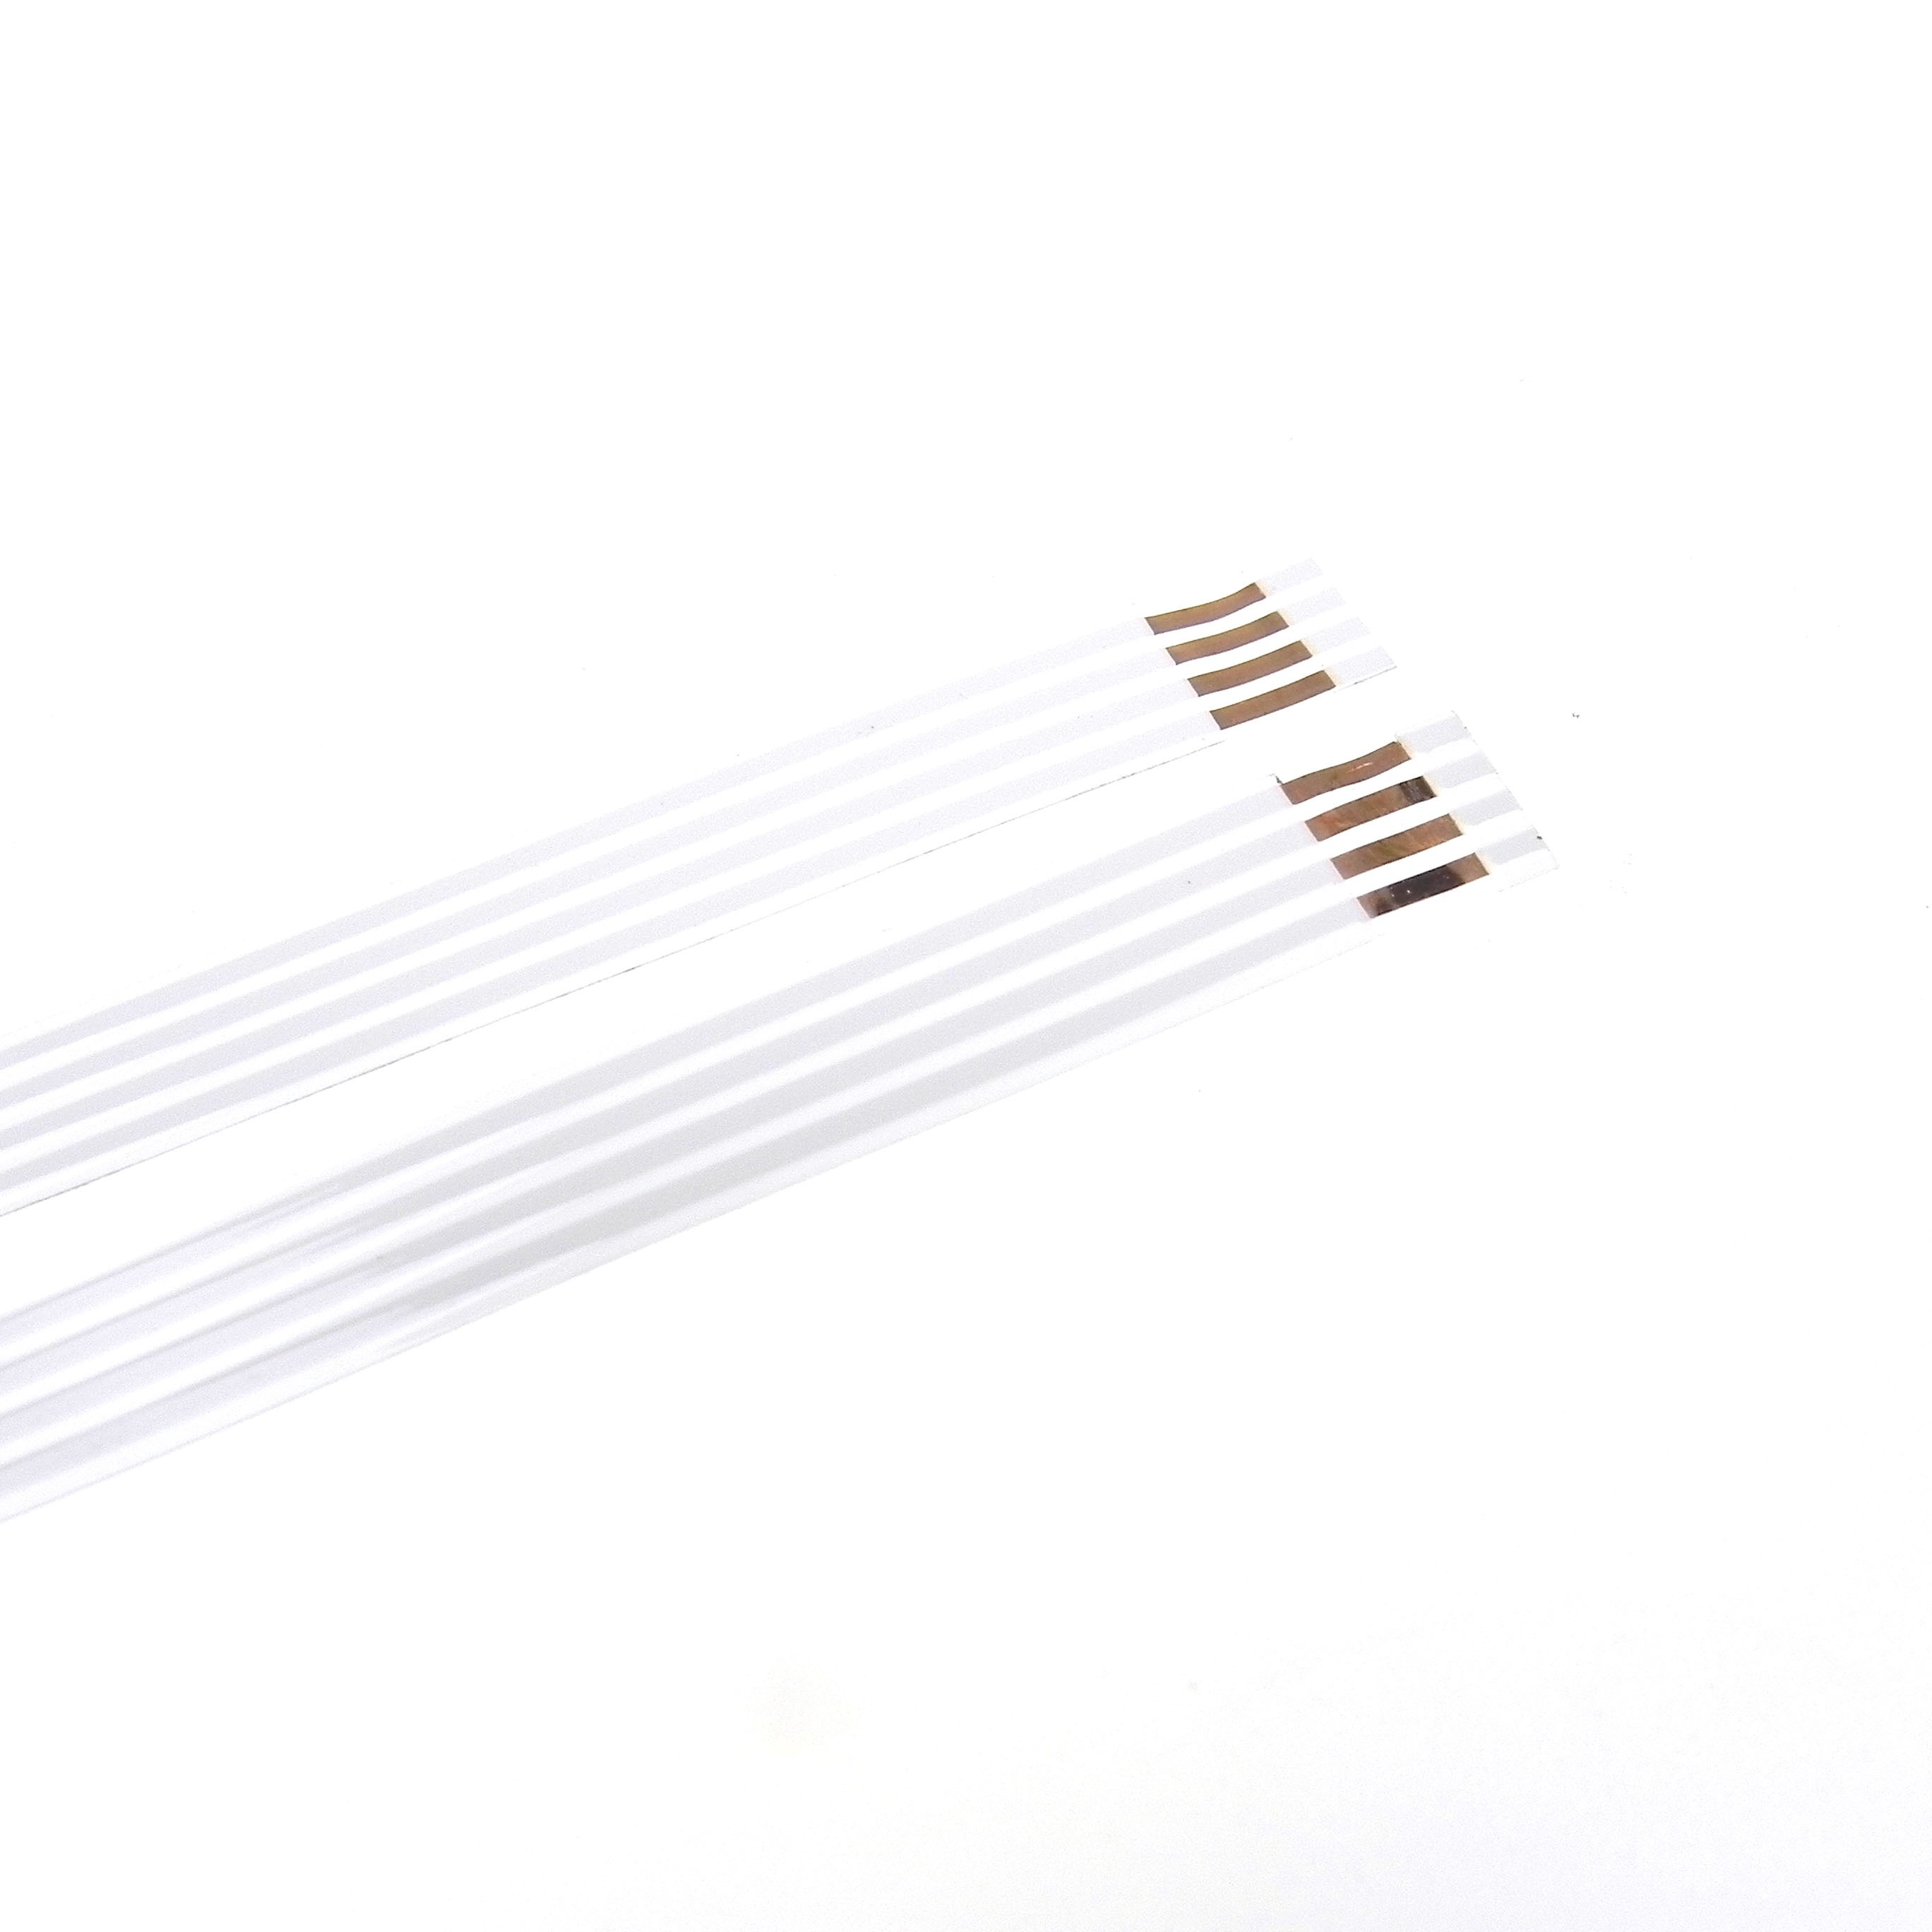 4pin 1.4mm pitch 660mm long airbag flat cable